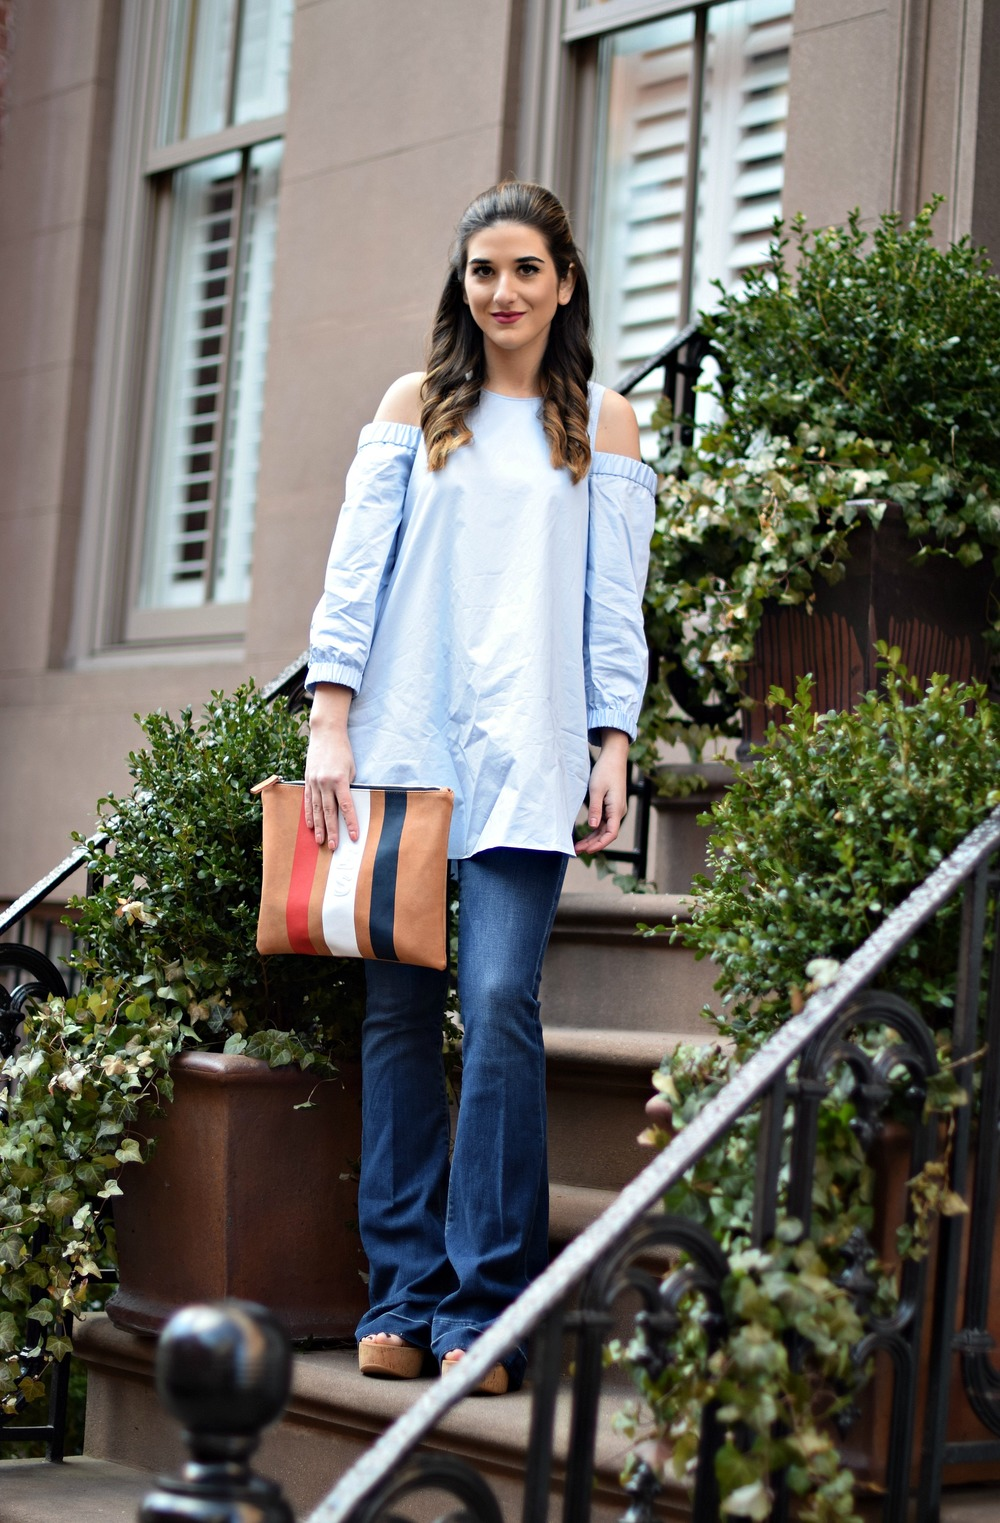 Cold Shoulder Tibi Top Frame Denim Louboutins & Love Fashion Blog Esther Santer NYC Fashion Blogger Jeans Designer Outfit OOTD Trunk Club Stylist Online Shopping Dolce Vita Platform Sandals Women Girl Inspiration Inspo Buy Shoes Pretty Girly Clutch.jpg